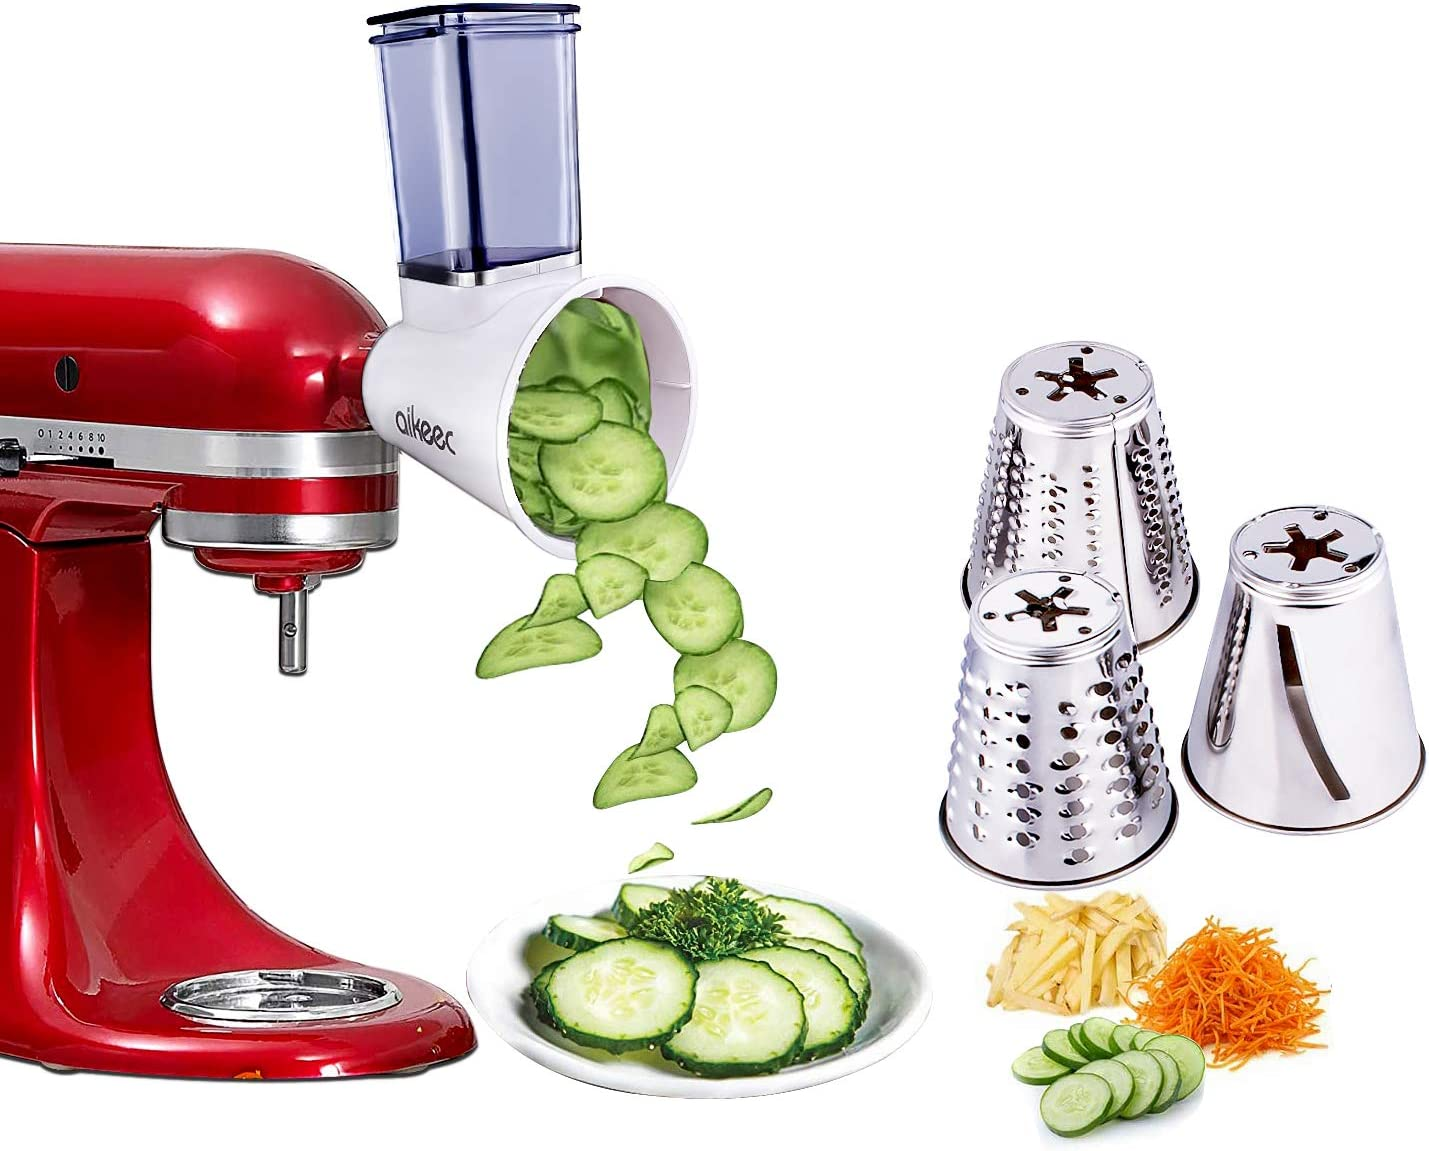 Slicer//Shredder Attachment for KitchenAid Stand Mixers as Vegetable Chopper Accessory Salad Maker by Cofun White